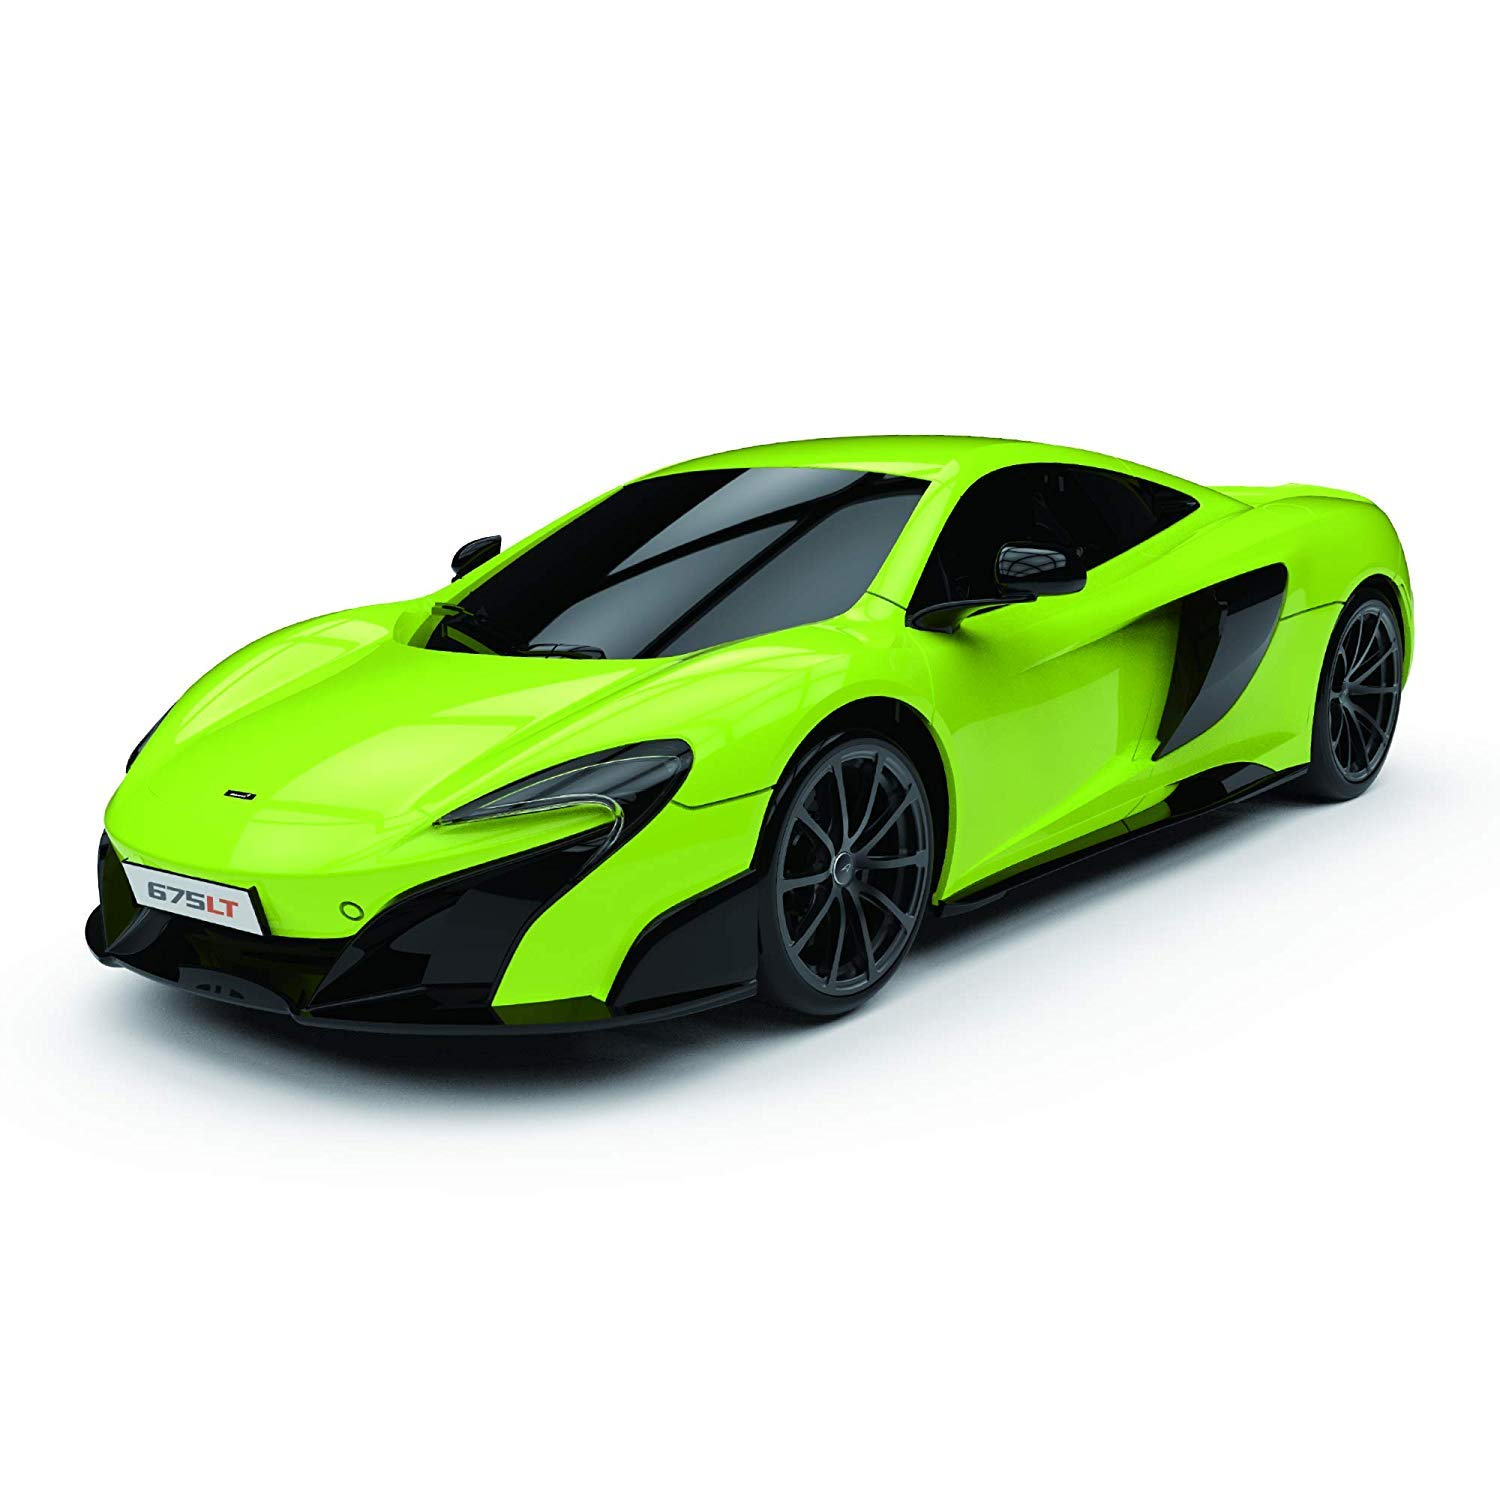 McLaren 675LT Car with Working Lights in Green Green Electric Radio Controlled Road RC Cars Boys Girls Toys Official License 1:18 Model 2.4Ghz Race Over 10 Cars at Once